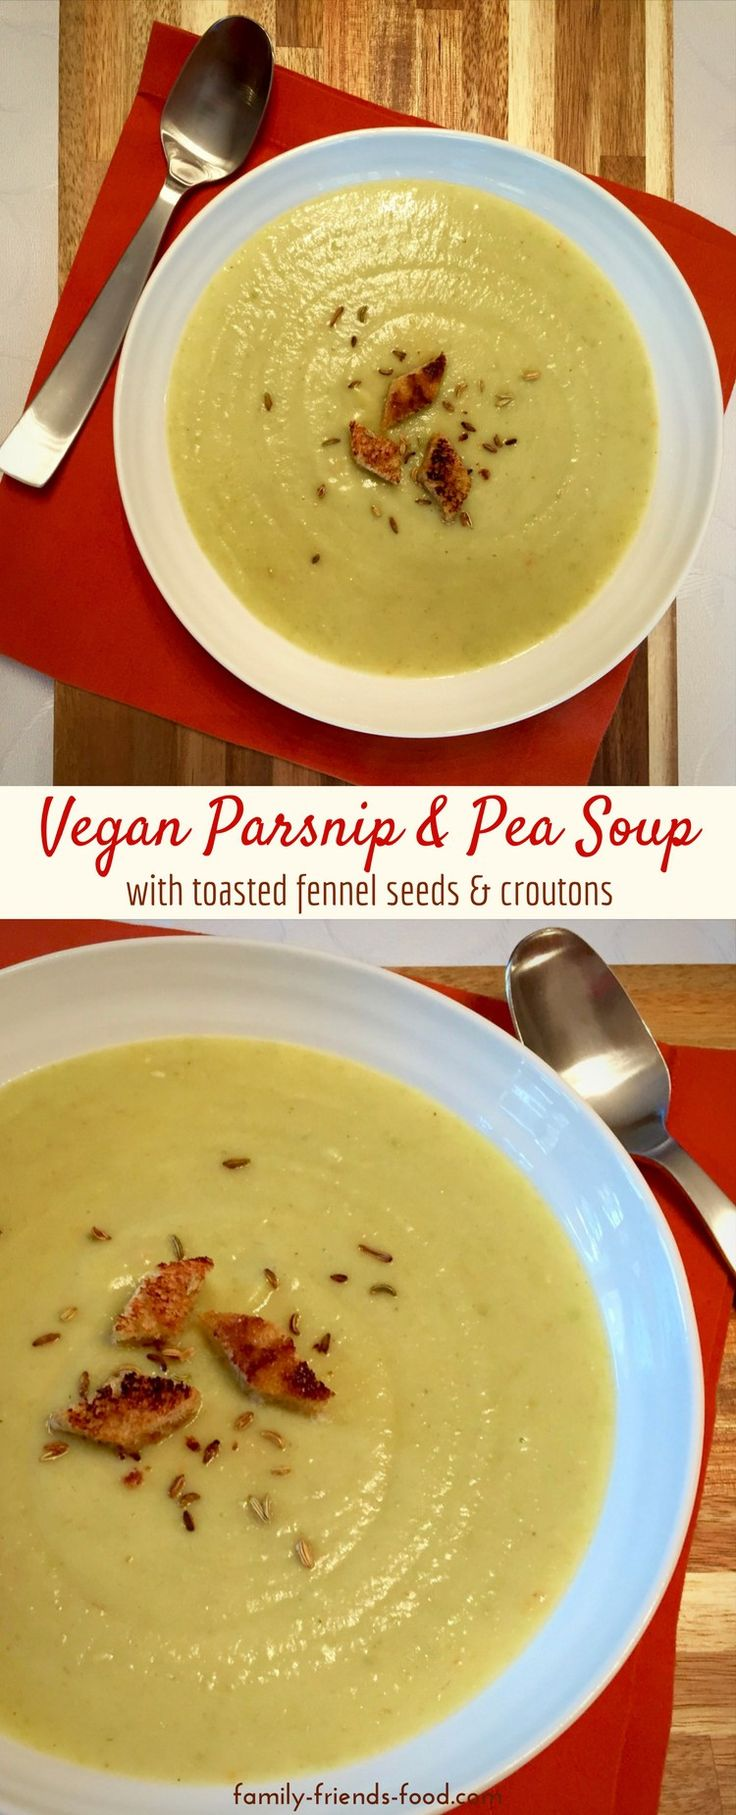 A creamy and delicious parsnip soup, with sweet green peas and a subtle fennel flavour. Crunchy croutons and toasted fennel seeds are a perfect garnish. #vegan #veganuary #soup